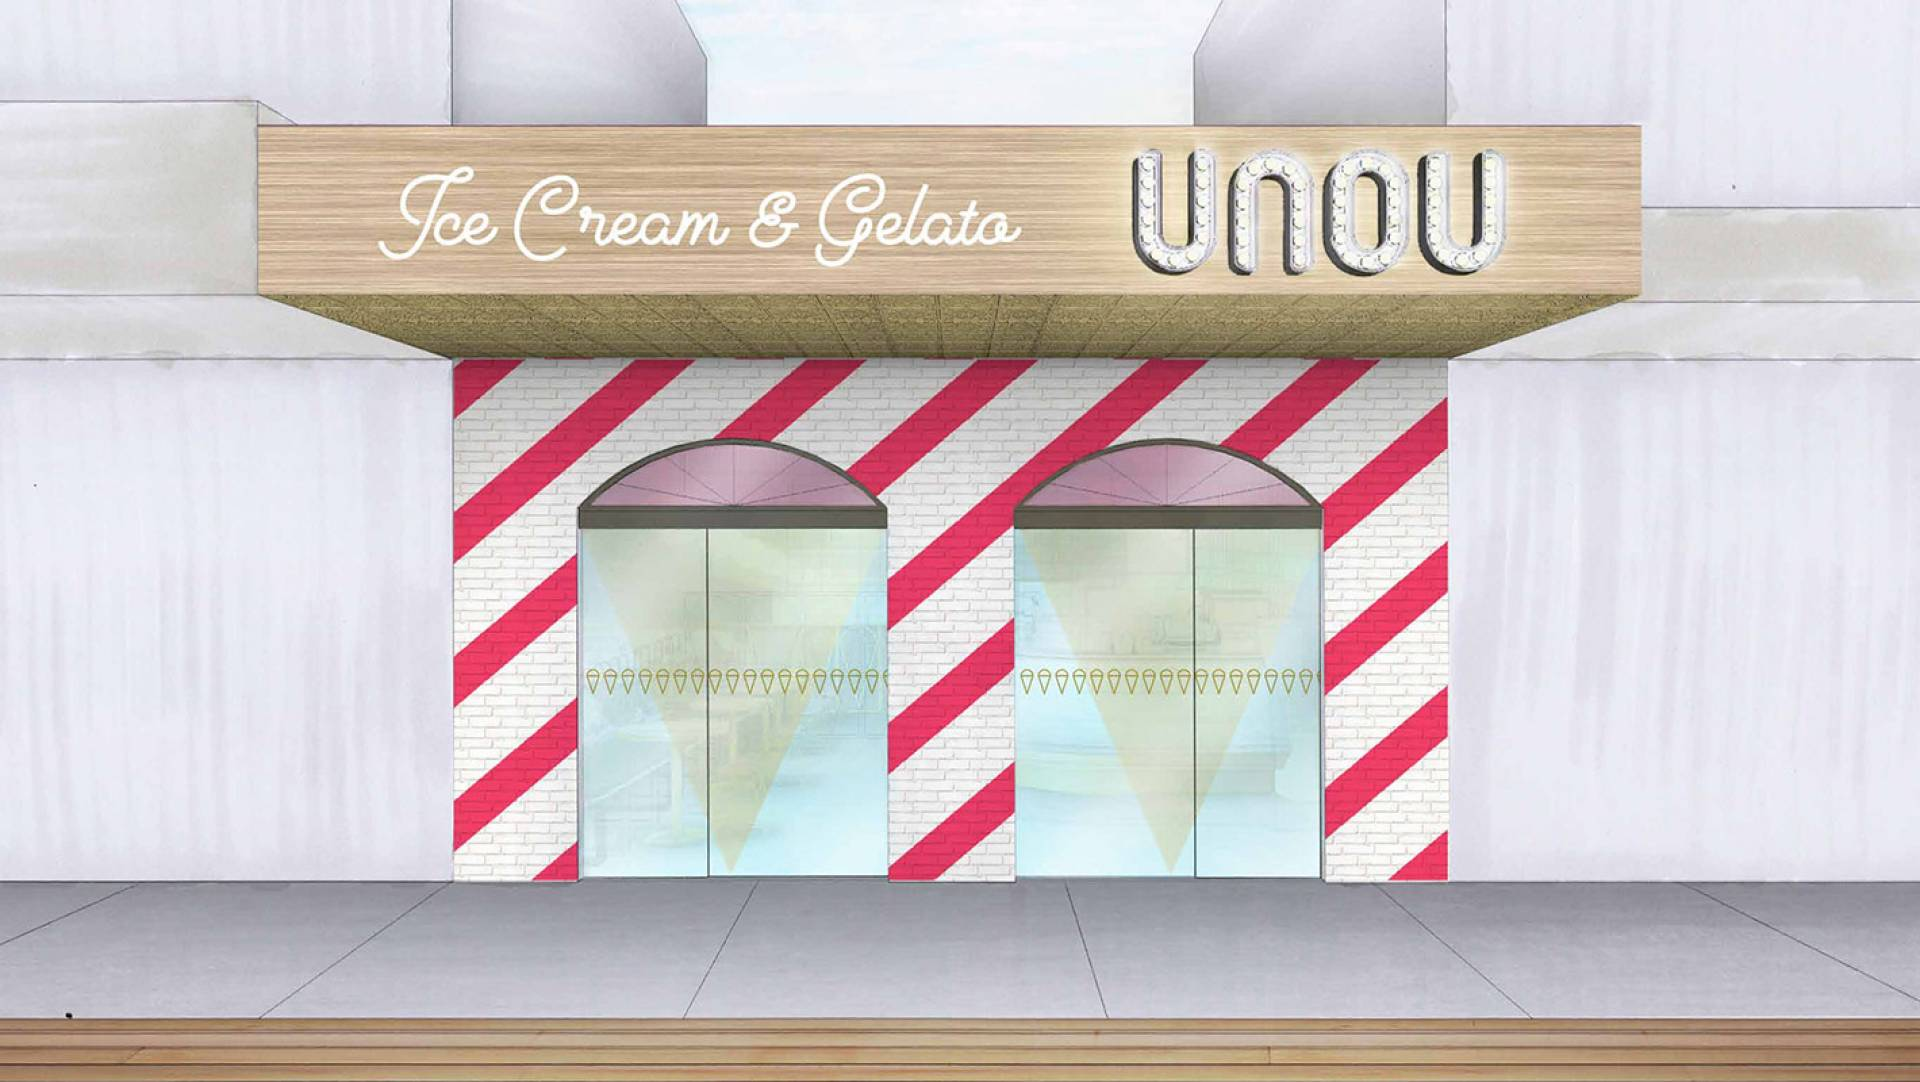 Ice Cream Gelato Store Design Melbourne - Unou Ice Cream & Gelato